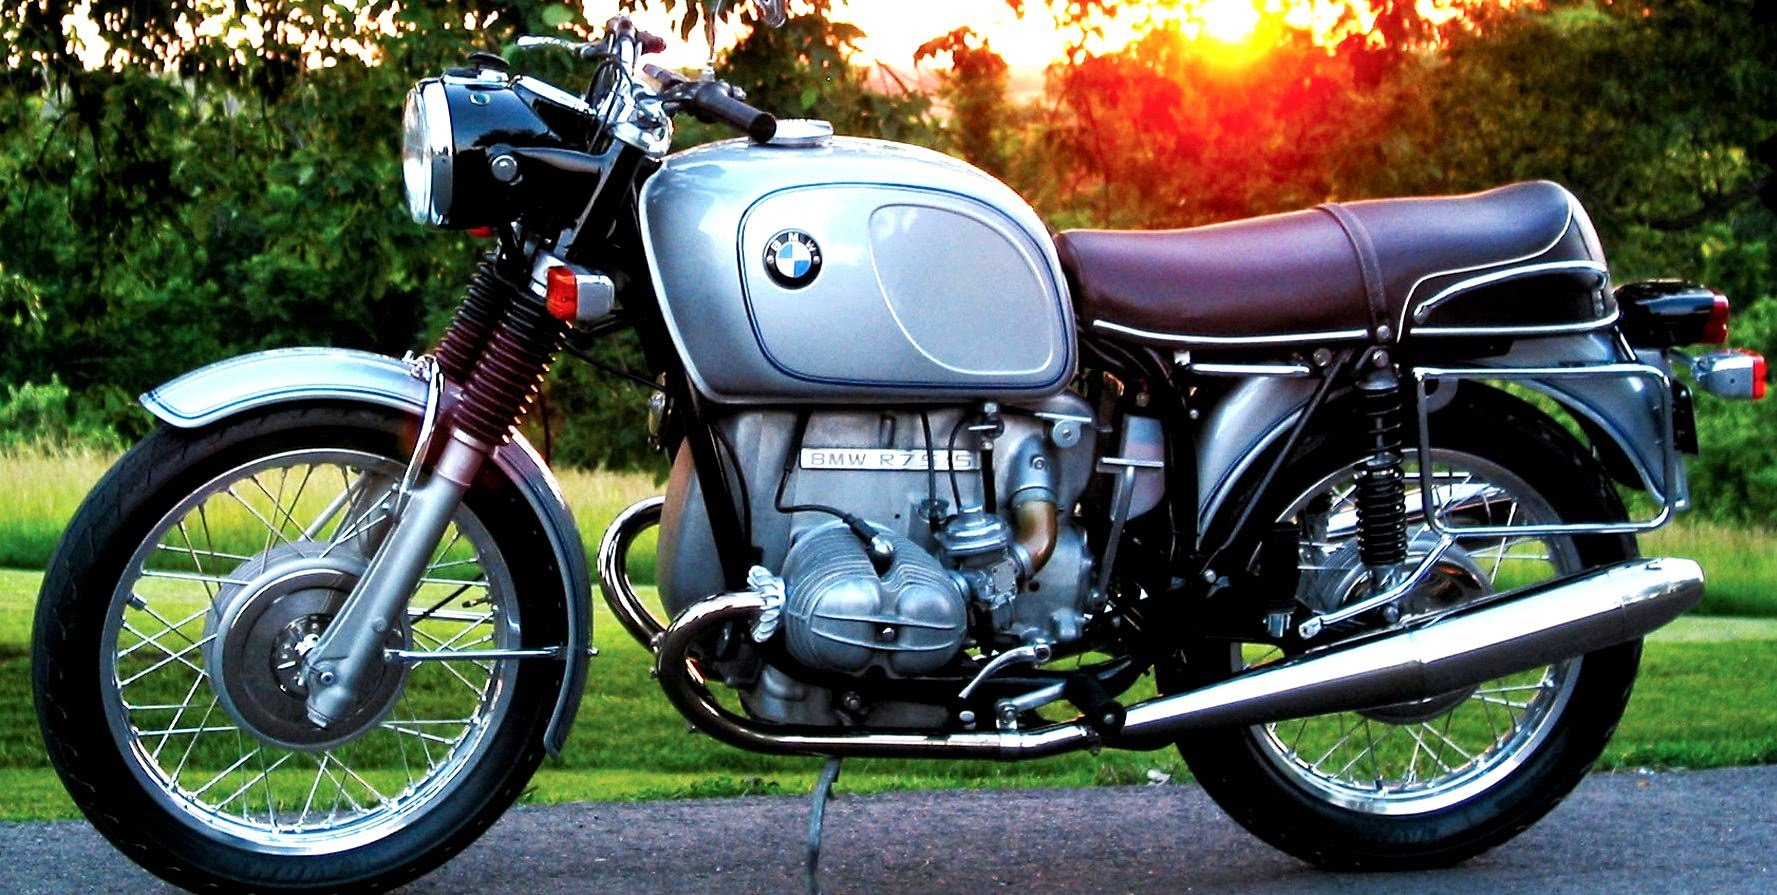 BMW R65 (reduced effect) 1990 images #10700